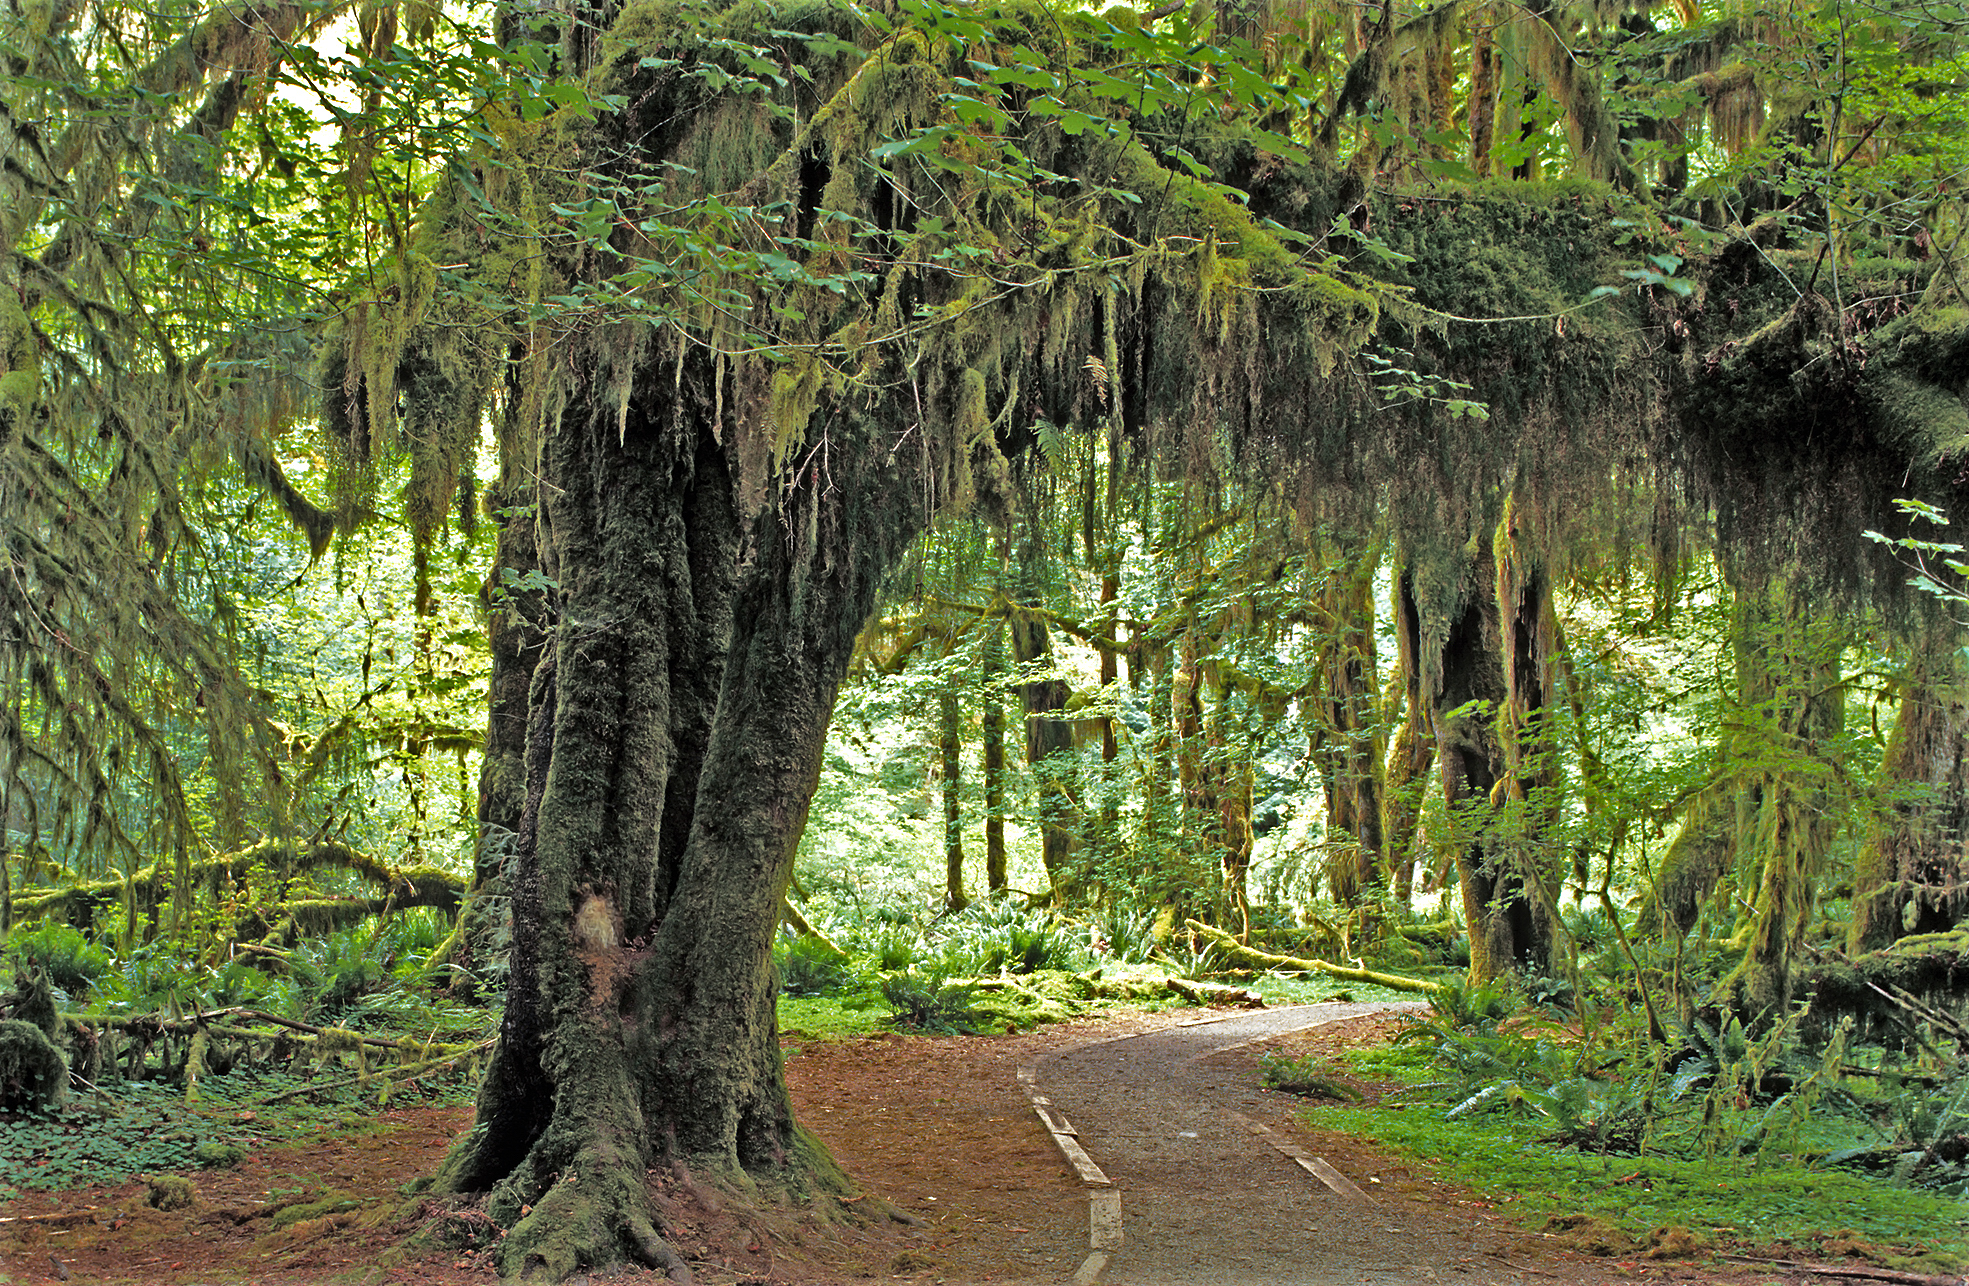 Olympic national park one of the wildest places left in the usa 36